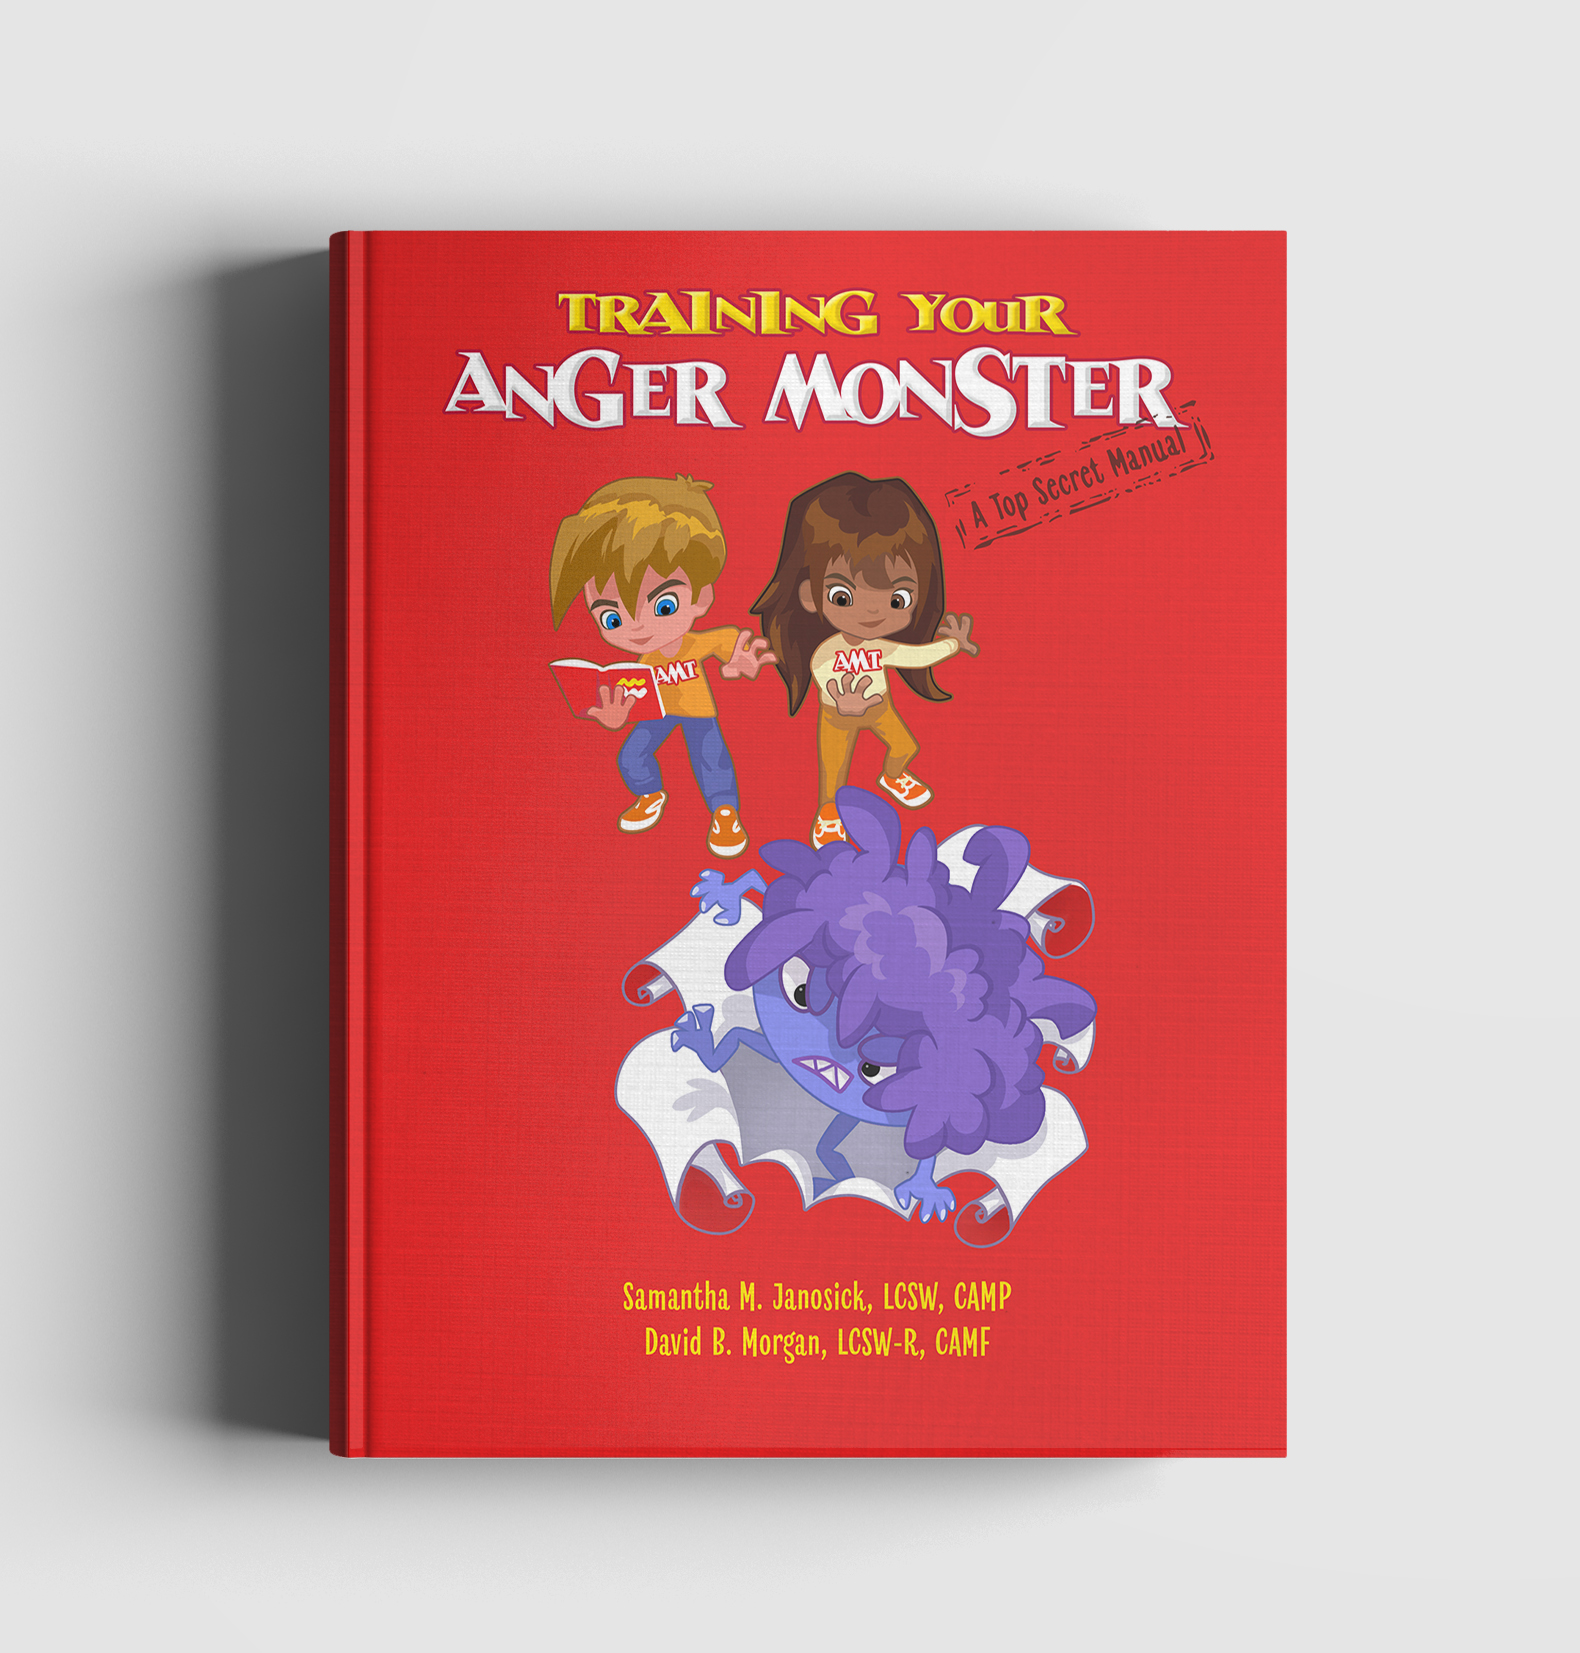 anger monster book mockup - Products